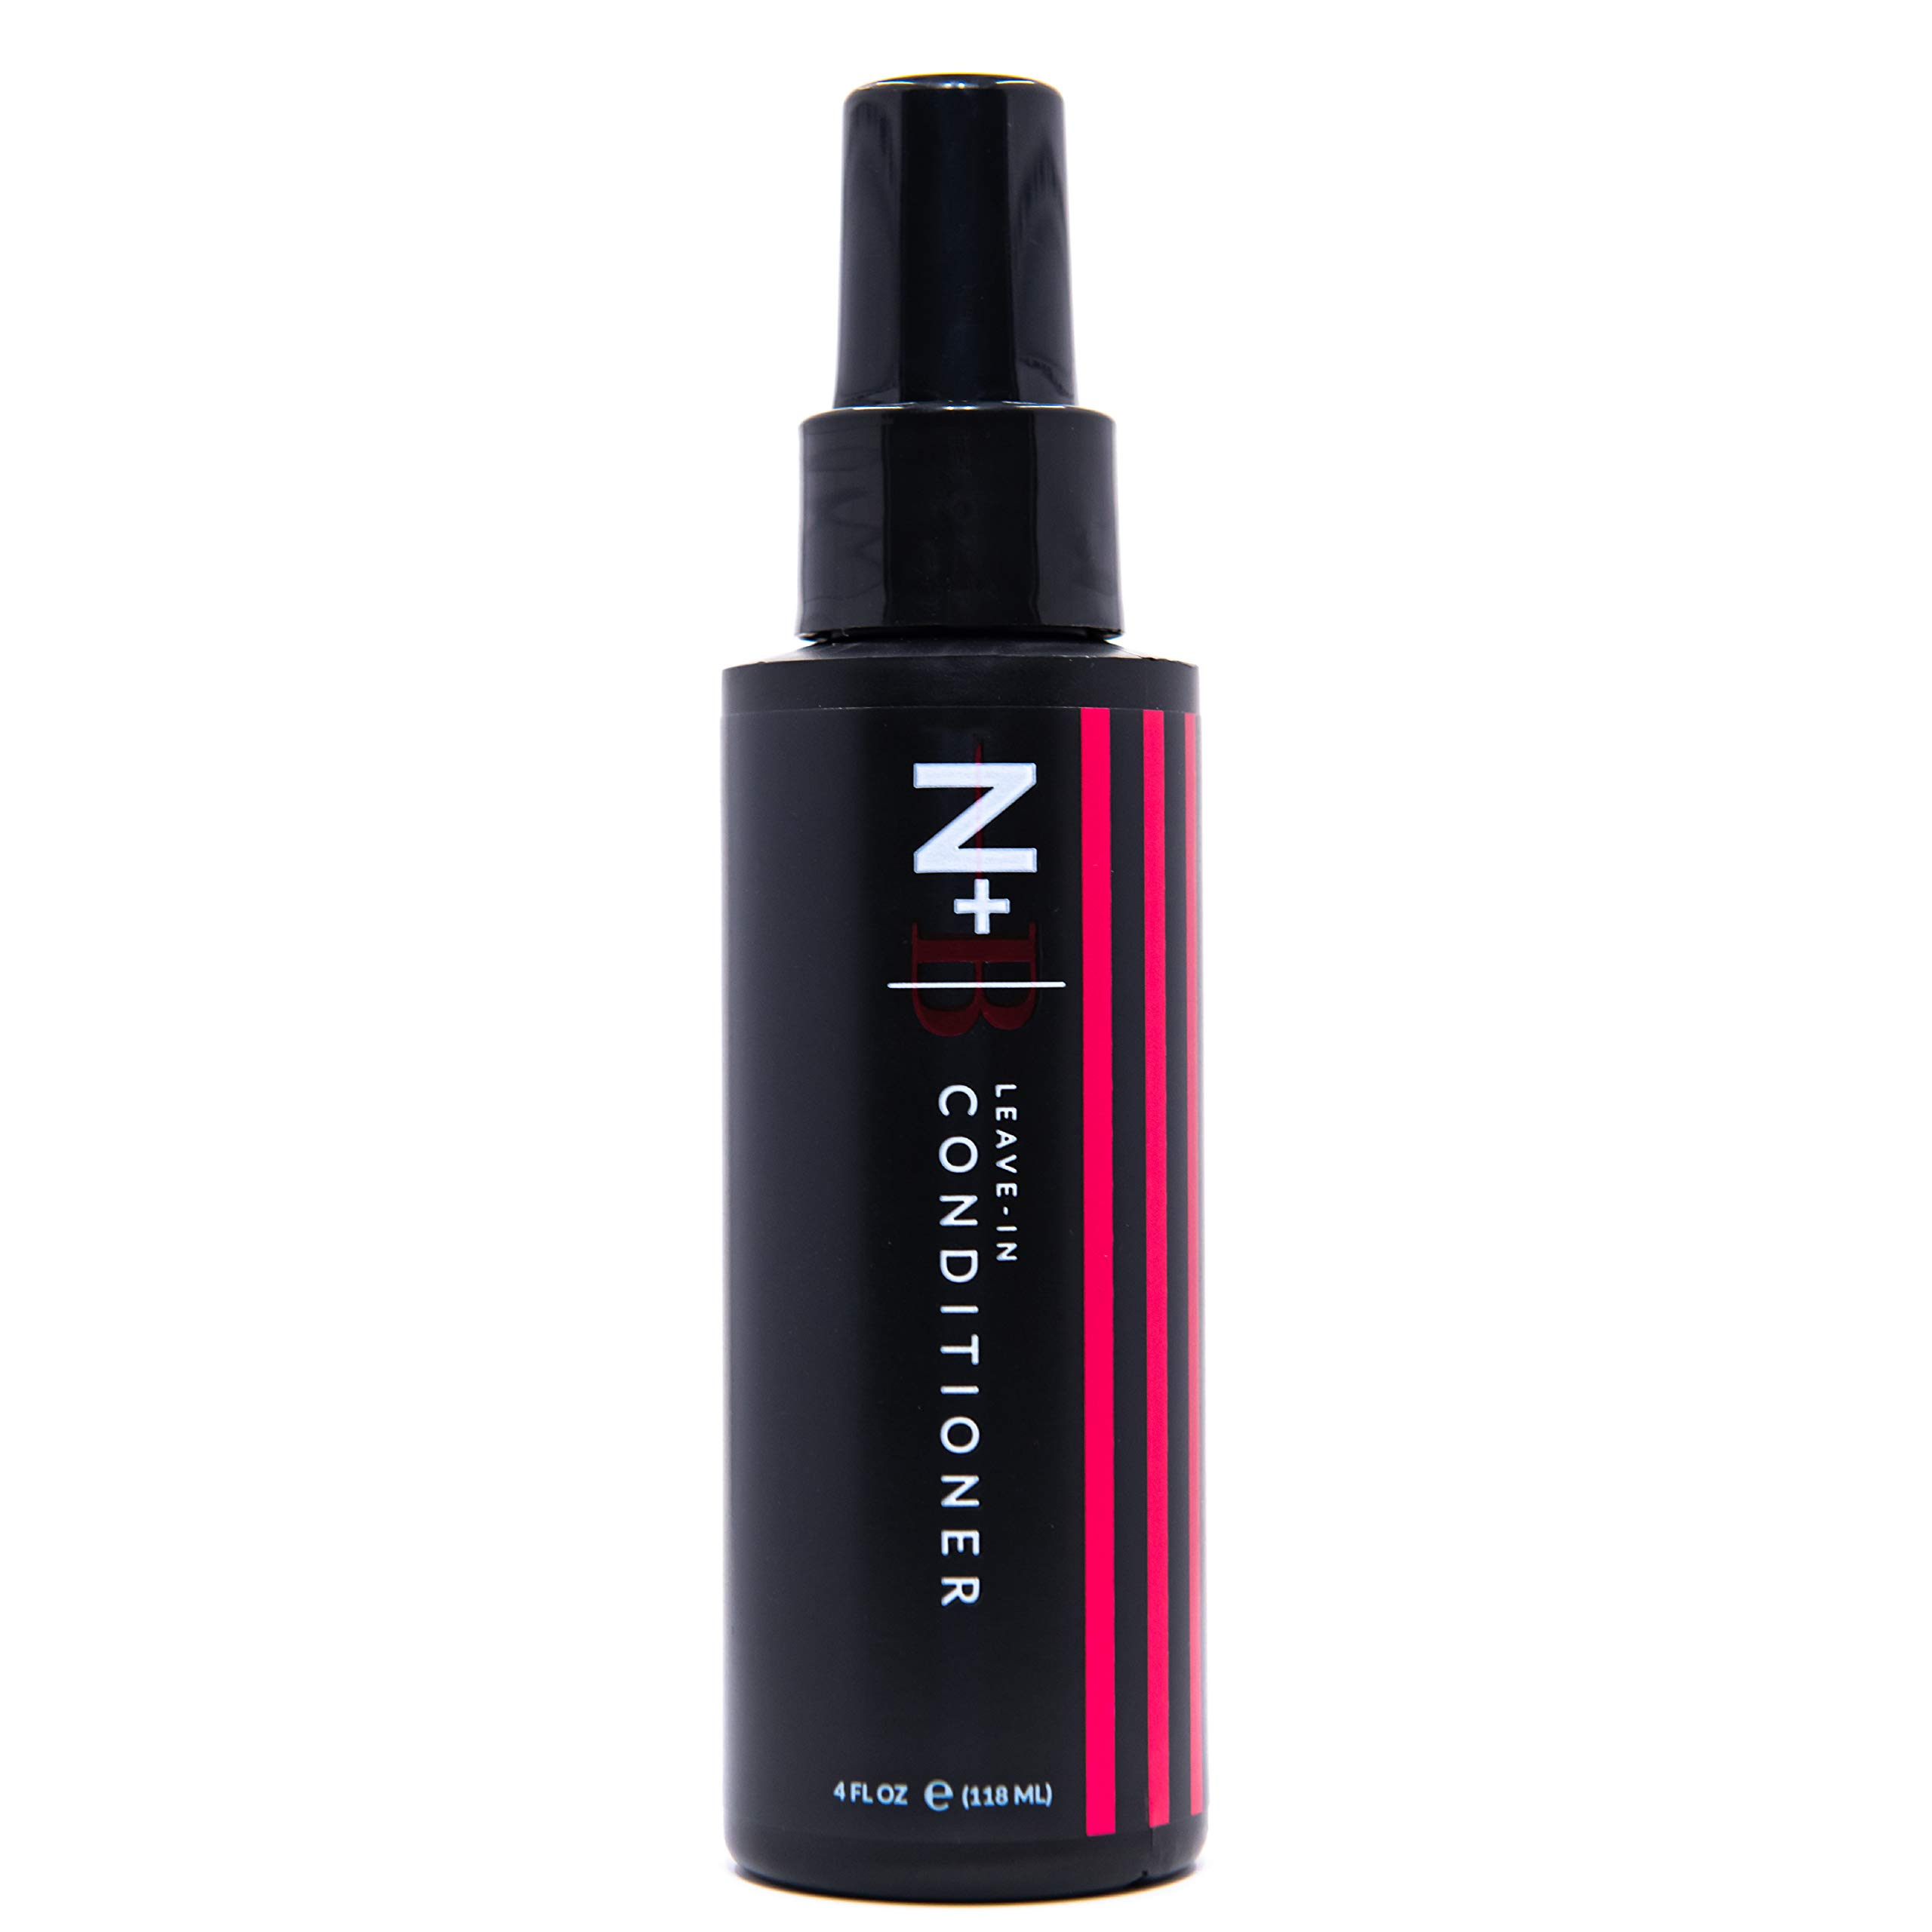 N+B Leave-in   25+ Benefits   For Daily Use   Detangle and Hydrate  For All Hair Types and Textures   Made in the USA